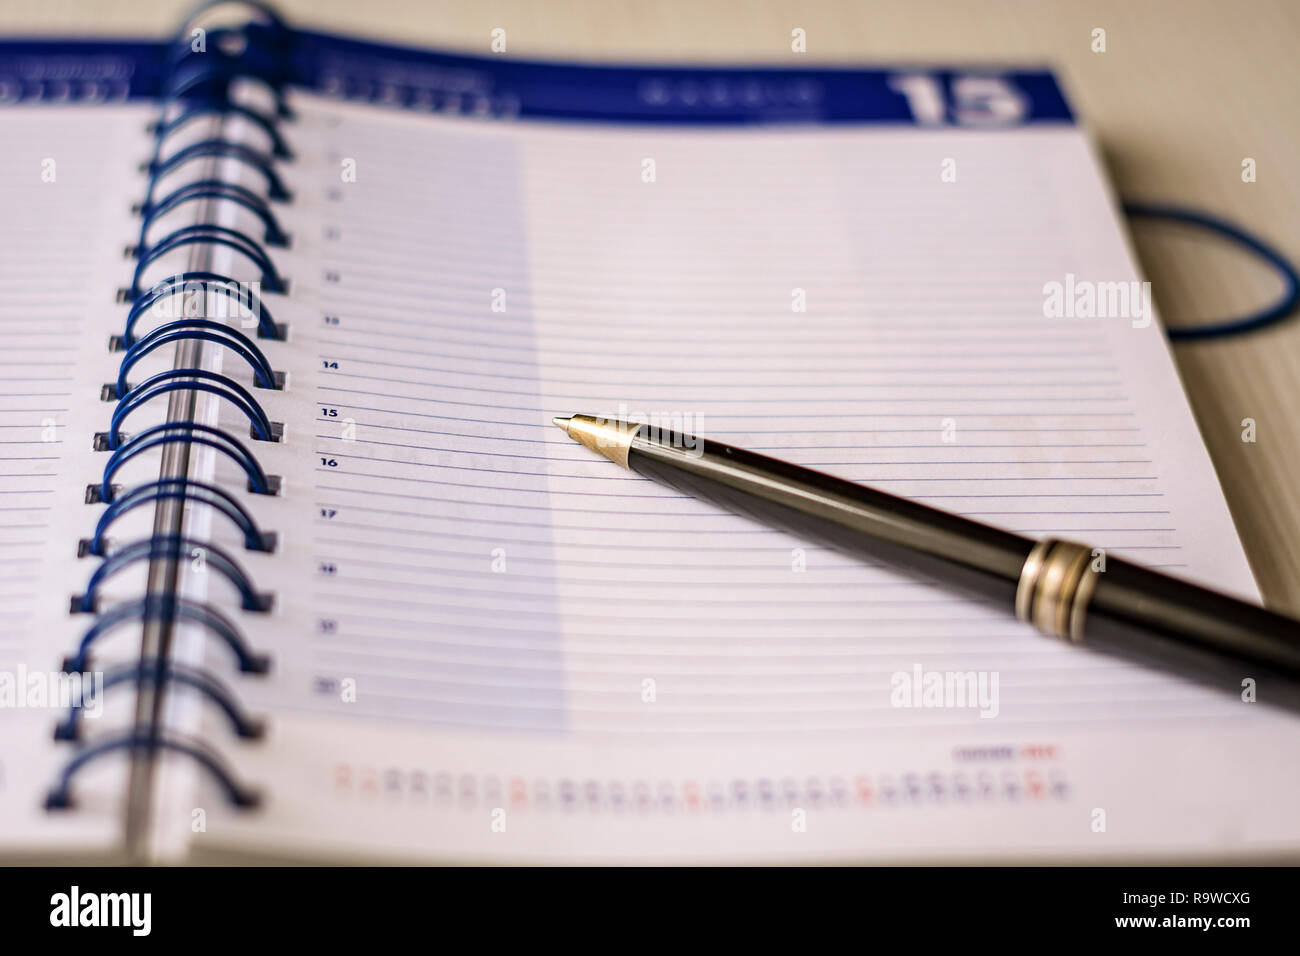 a black pen on an open spiral notebook. Business and scheduling concept - Stock Image